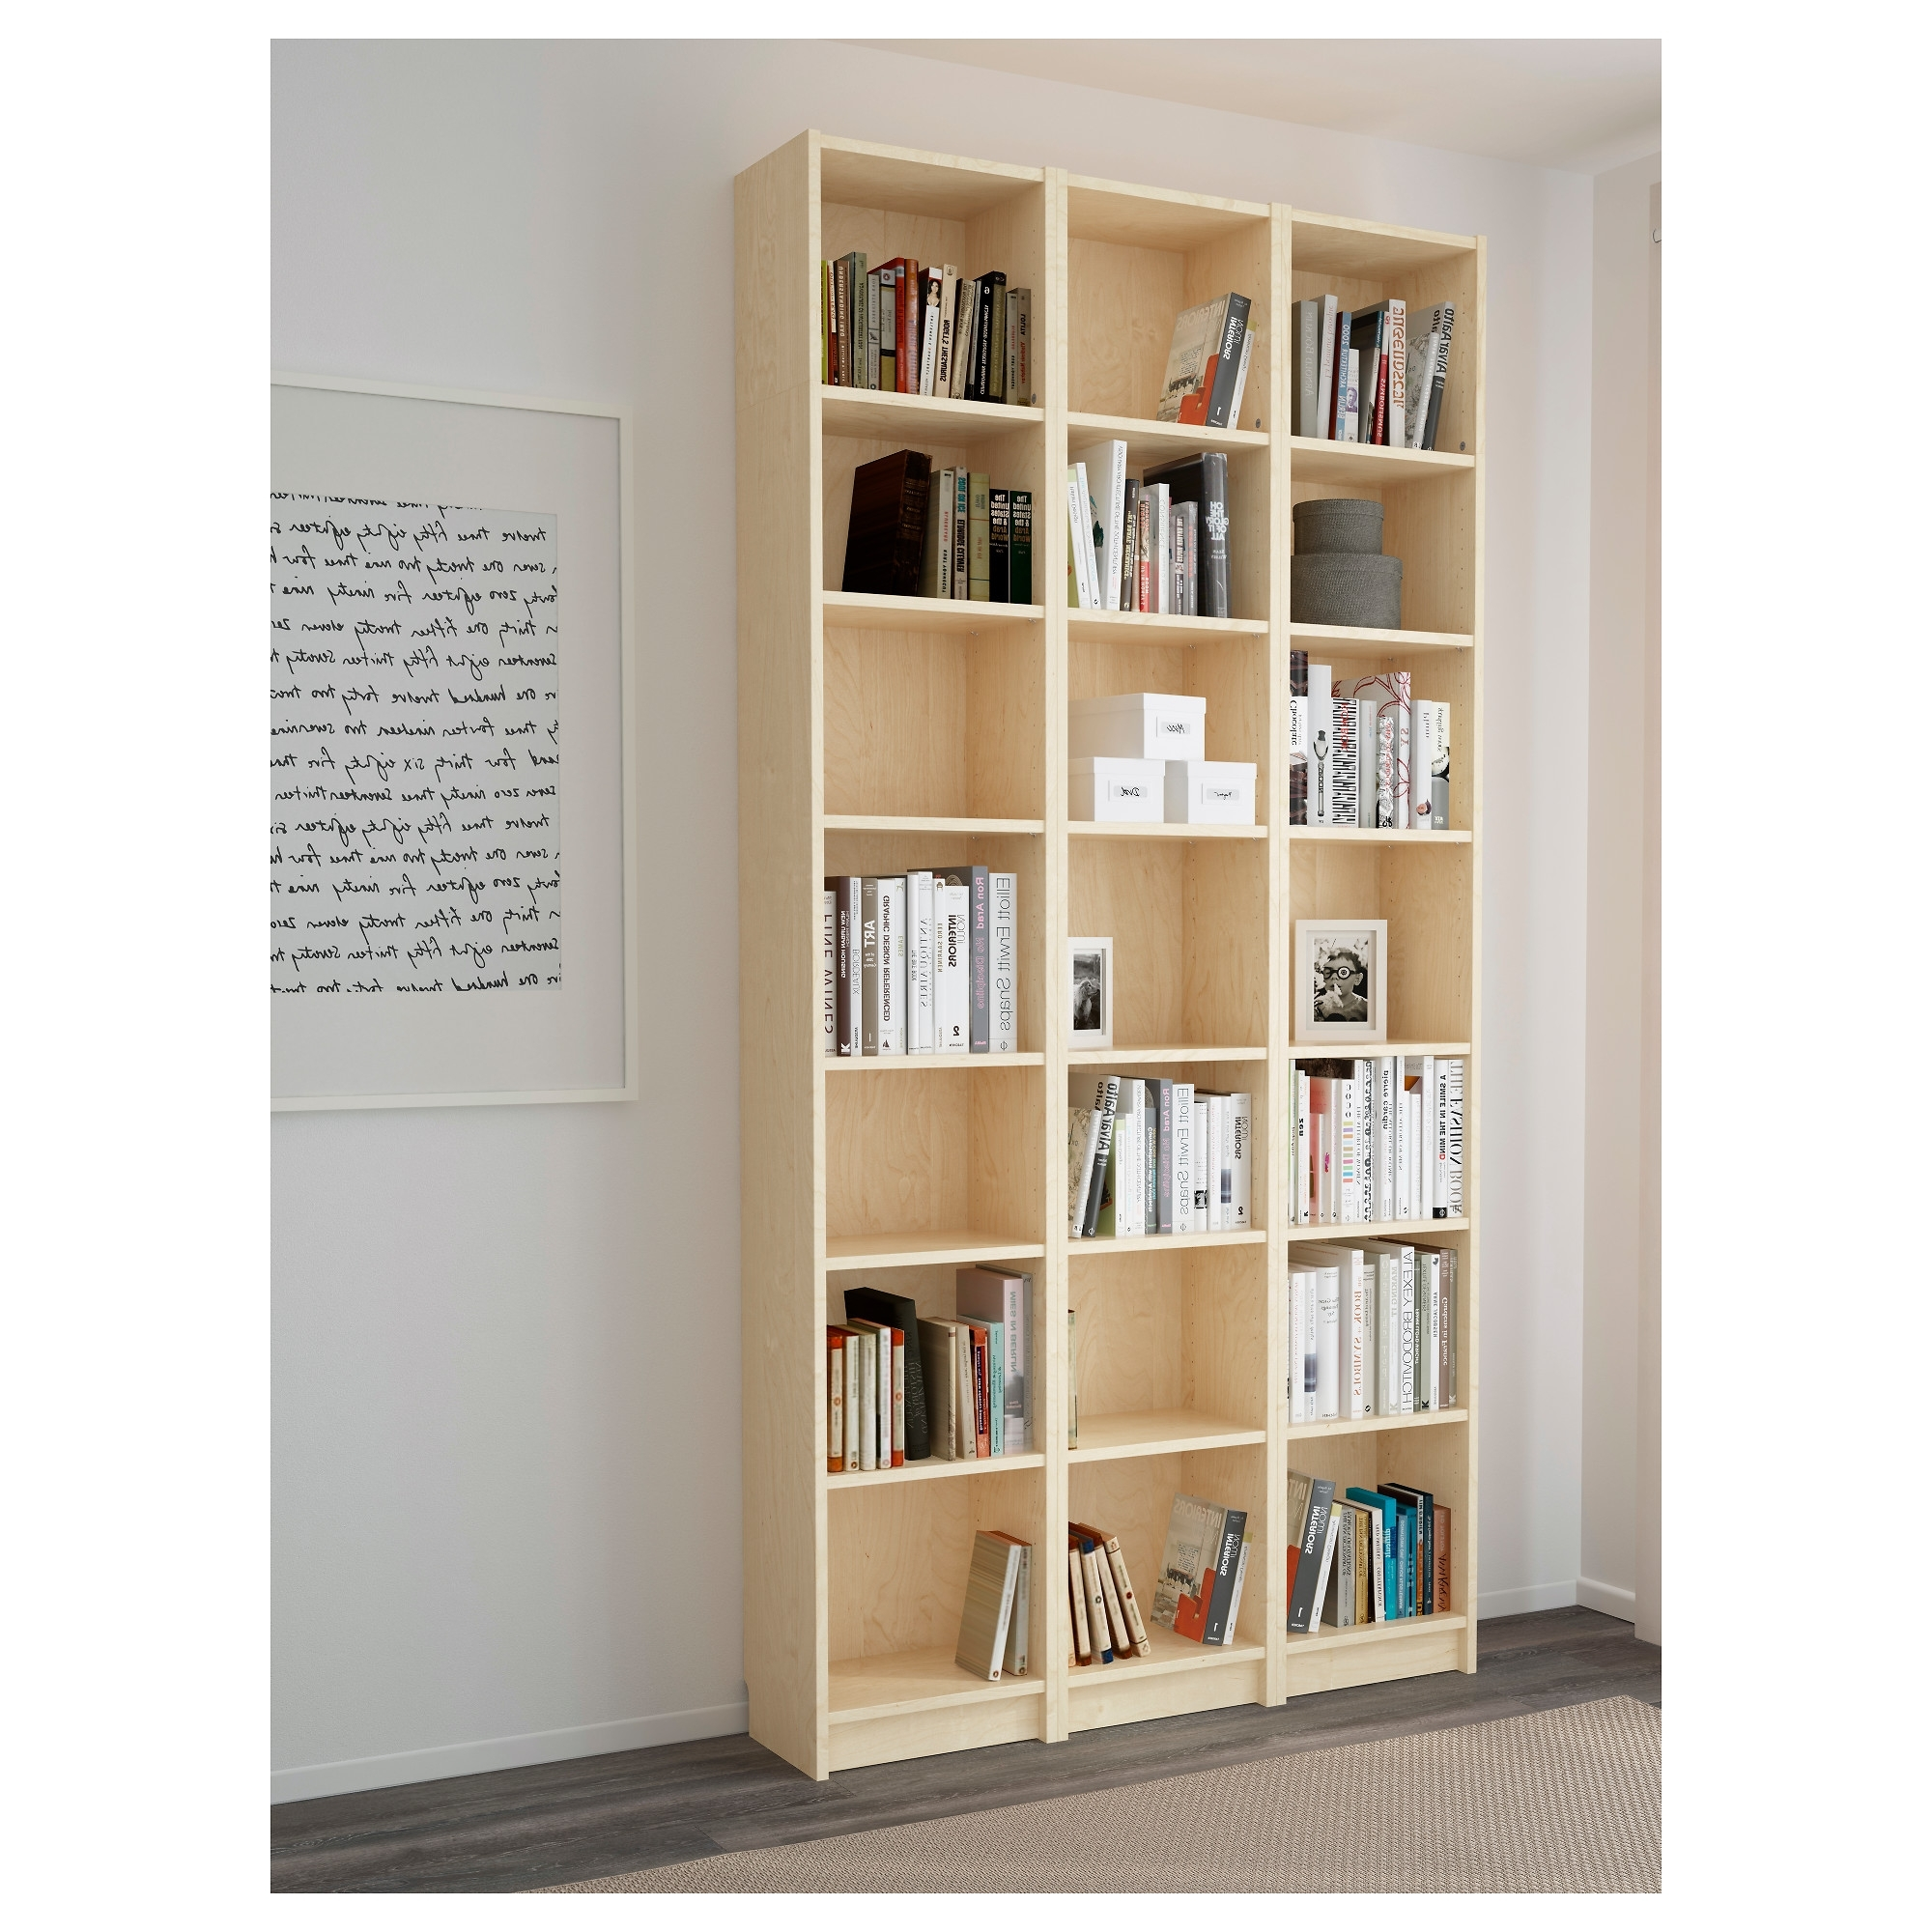 Widely Used Billy Bookcases Intended For Billy Bookcase Birch Veneer 120X237X28 Cm – Ikea (View 15 of 15)